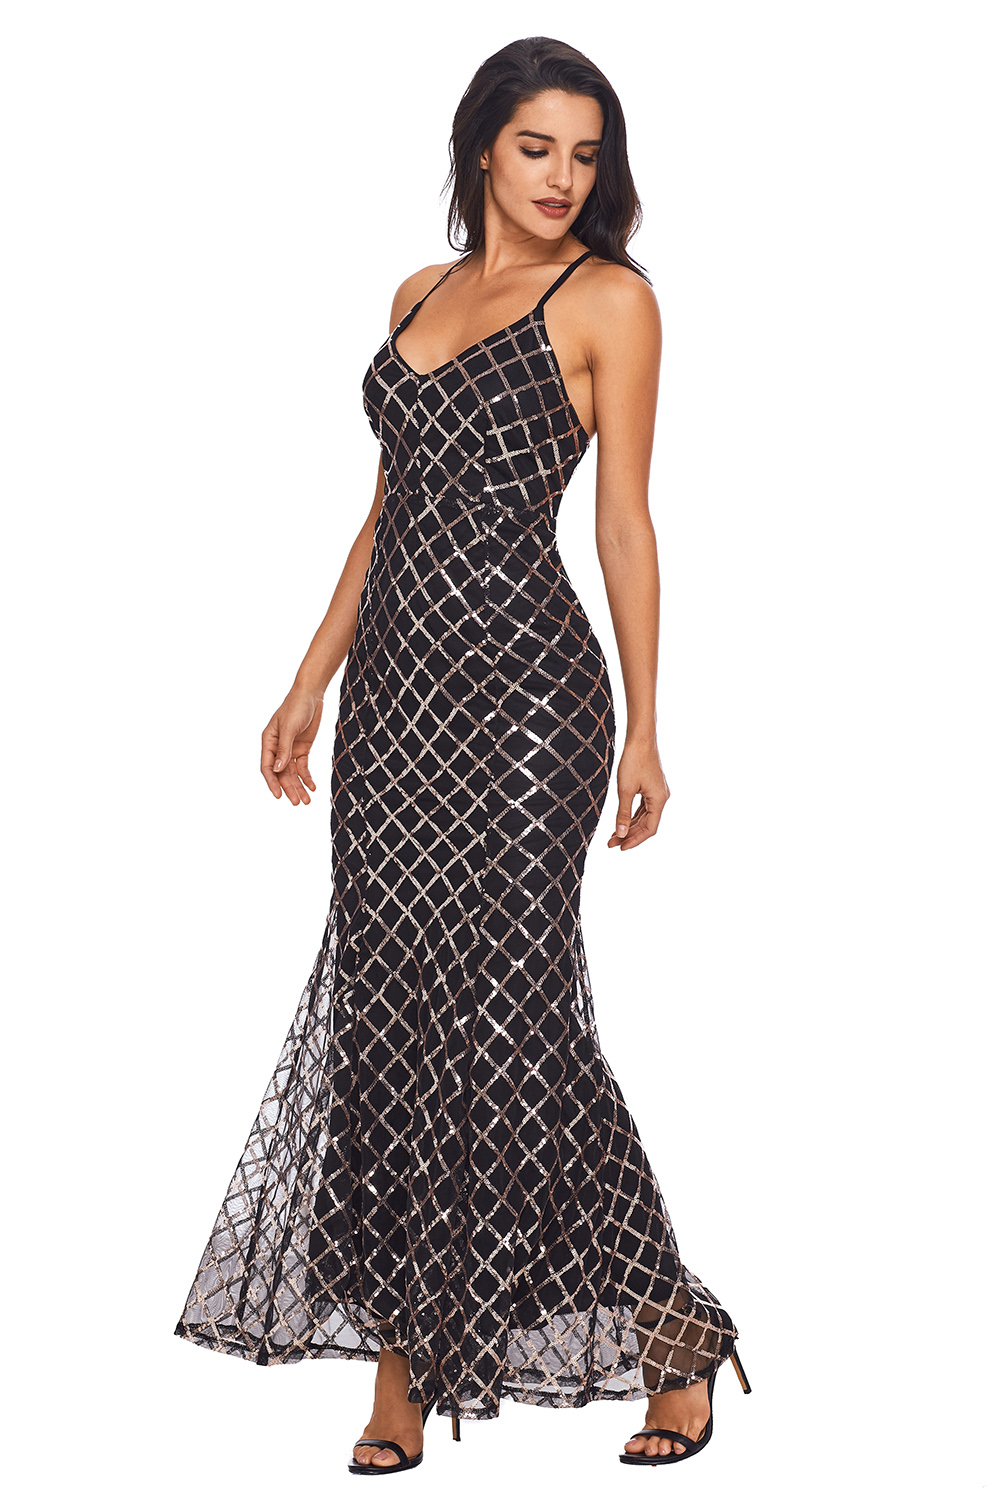 BY61868-2 Black Gold Sequins Crisscross Maxi Evening Dress